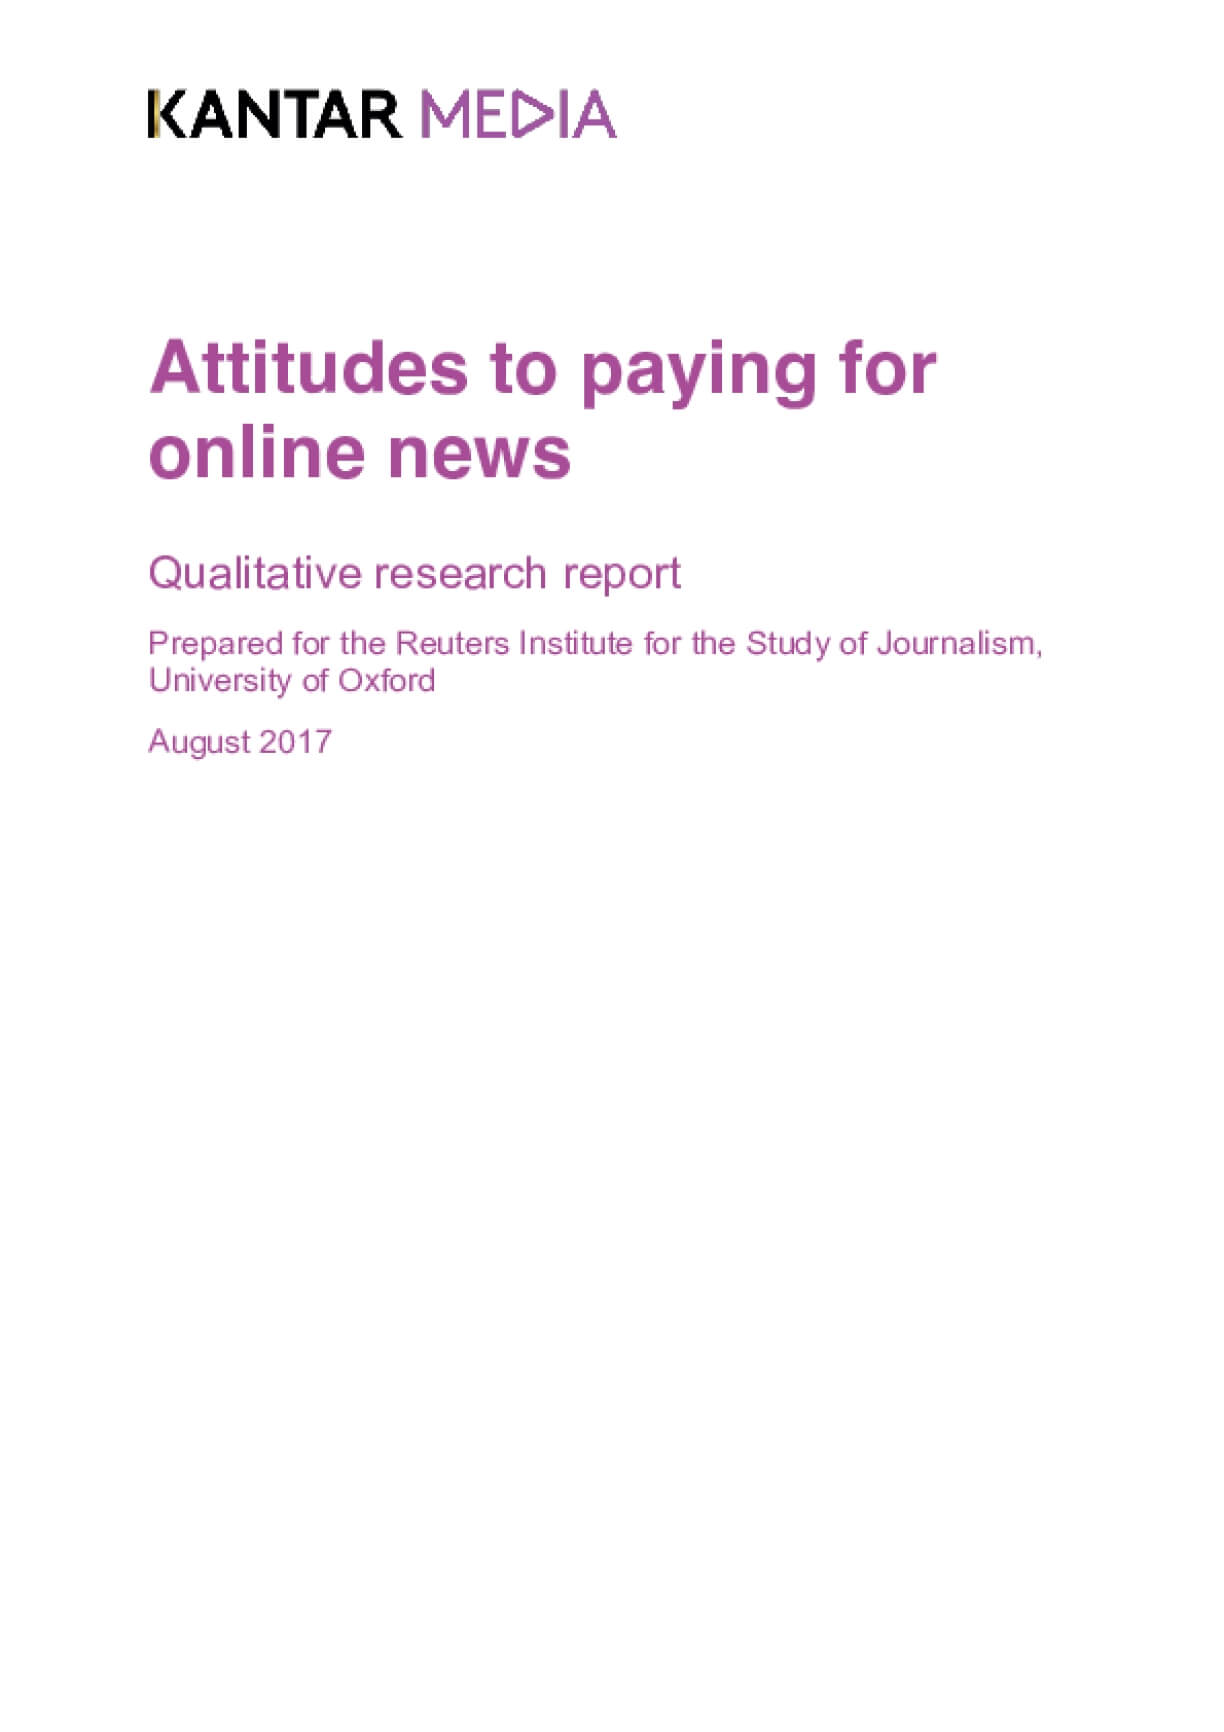 Attitudes to Paying for Online News